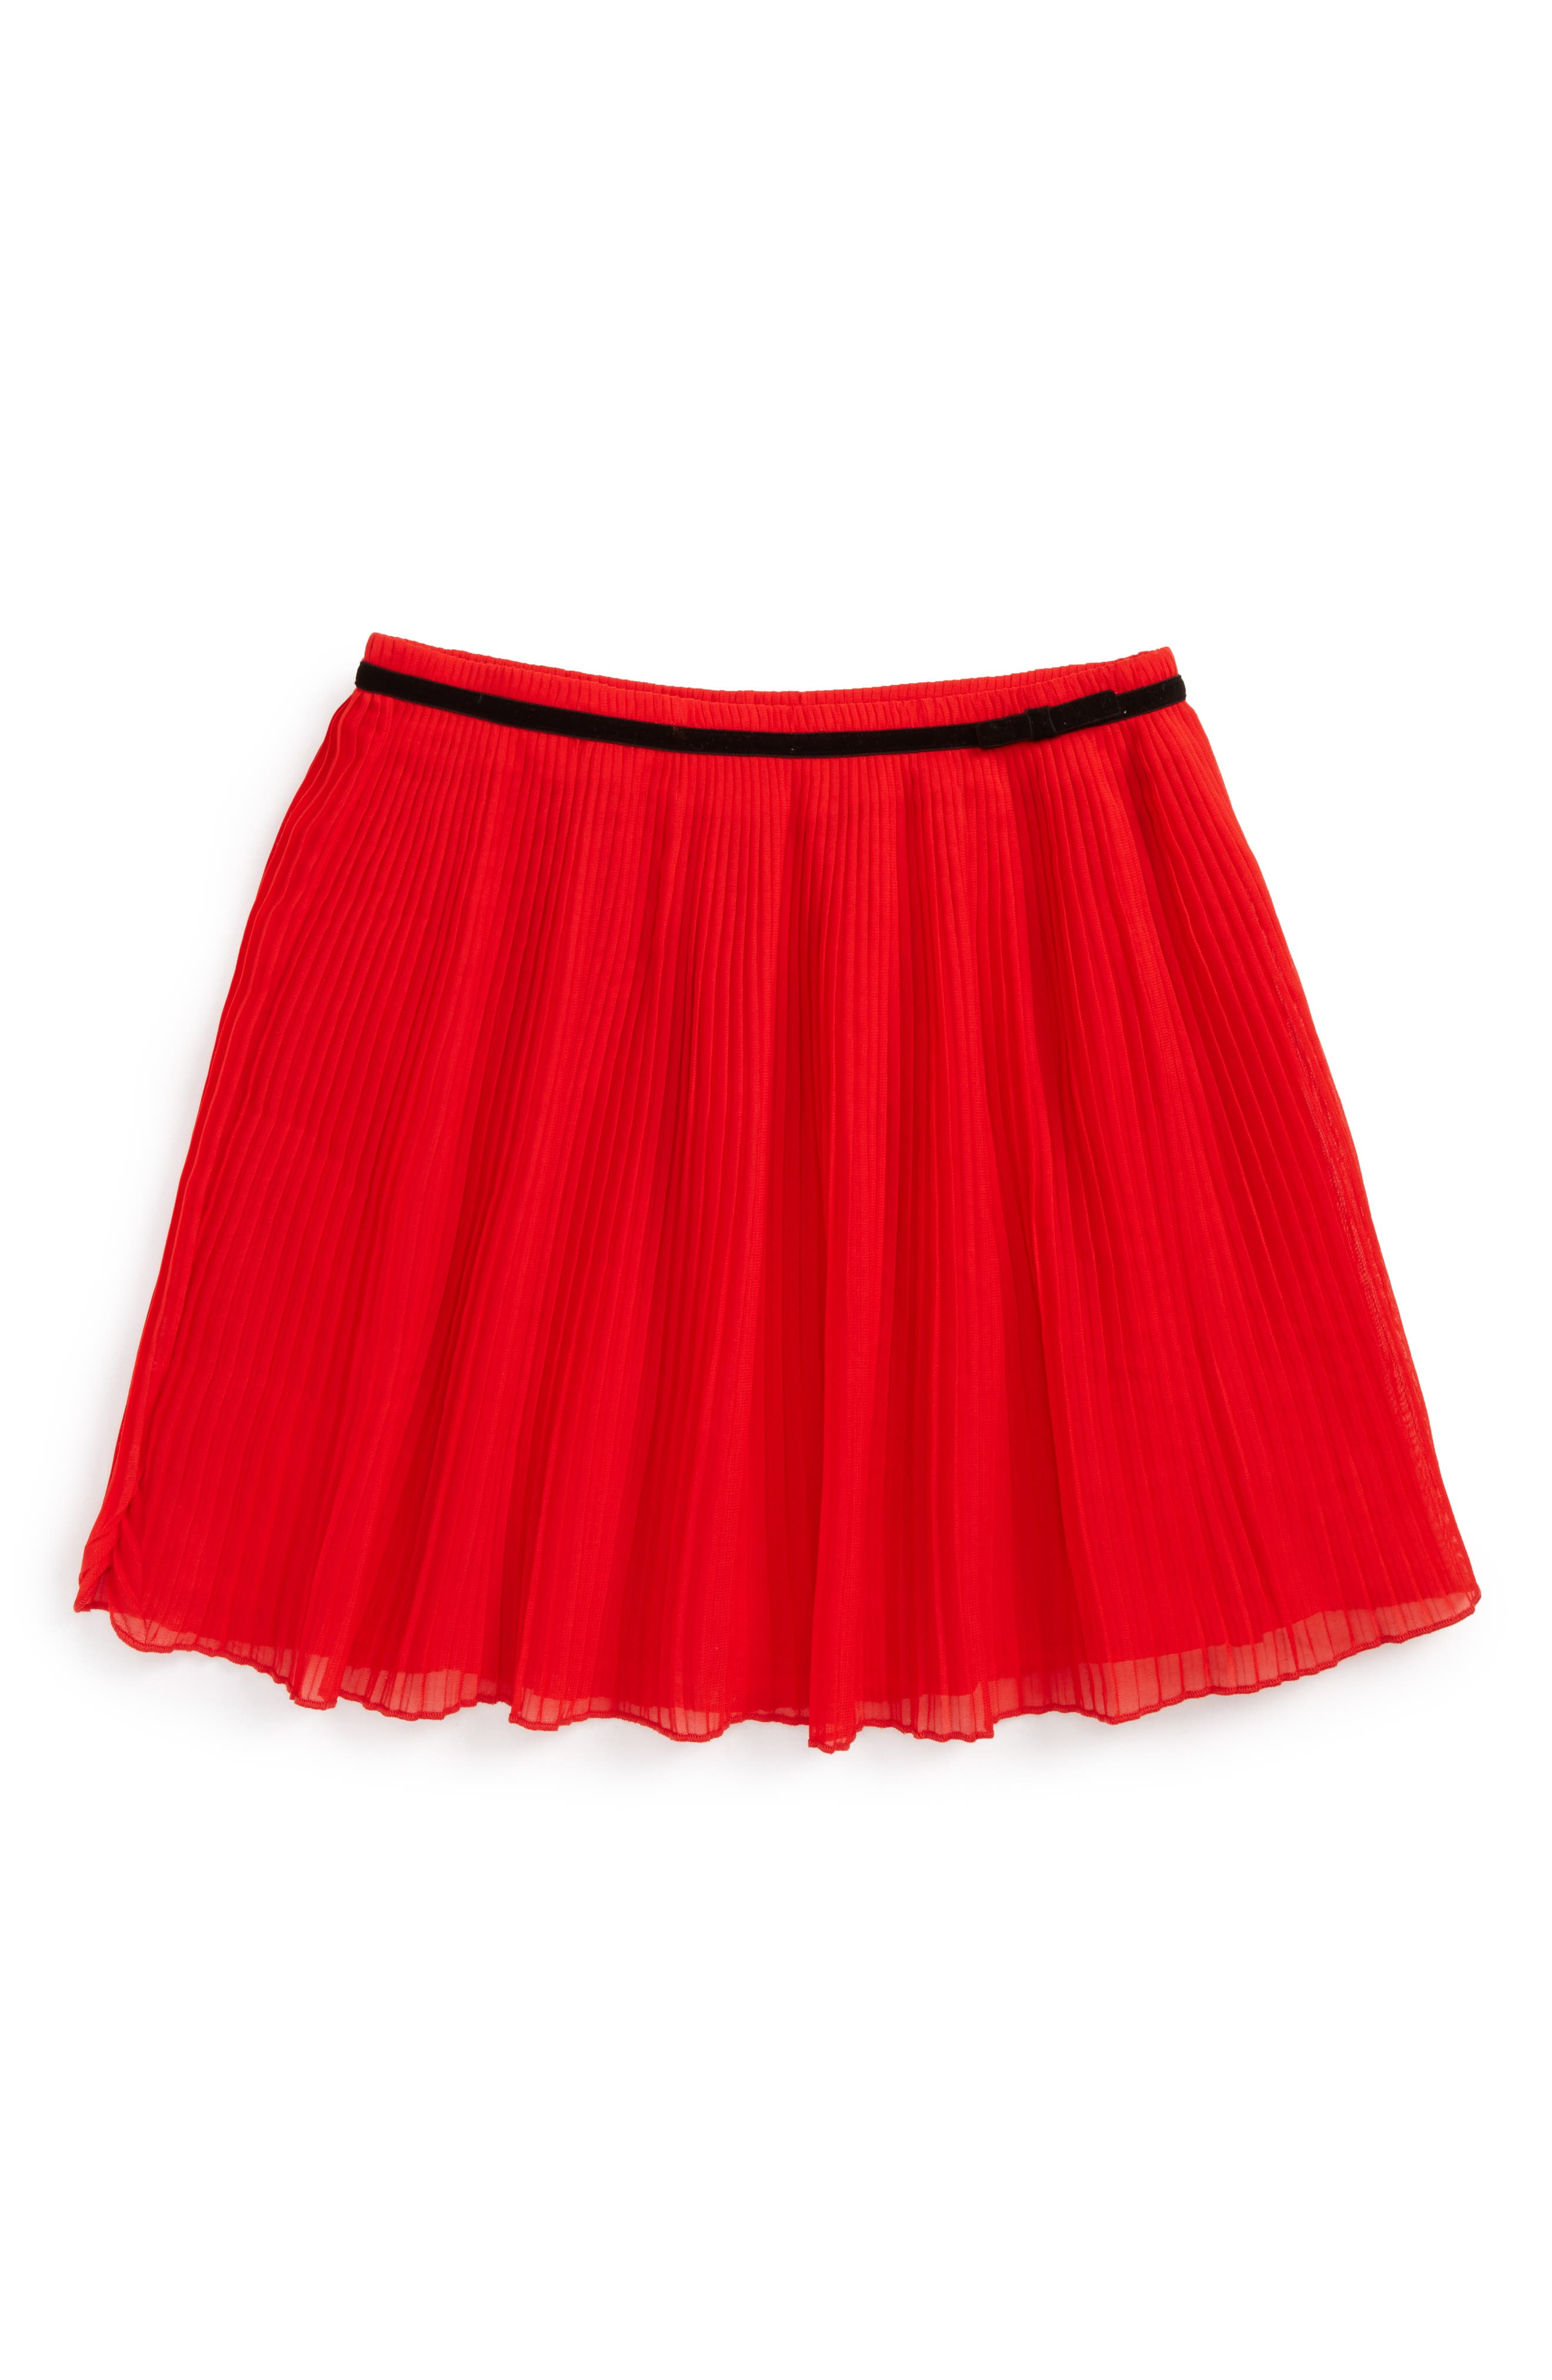 Main Image - kate spade new york pleated chiffon skirt (Big Girls)